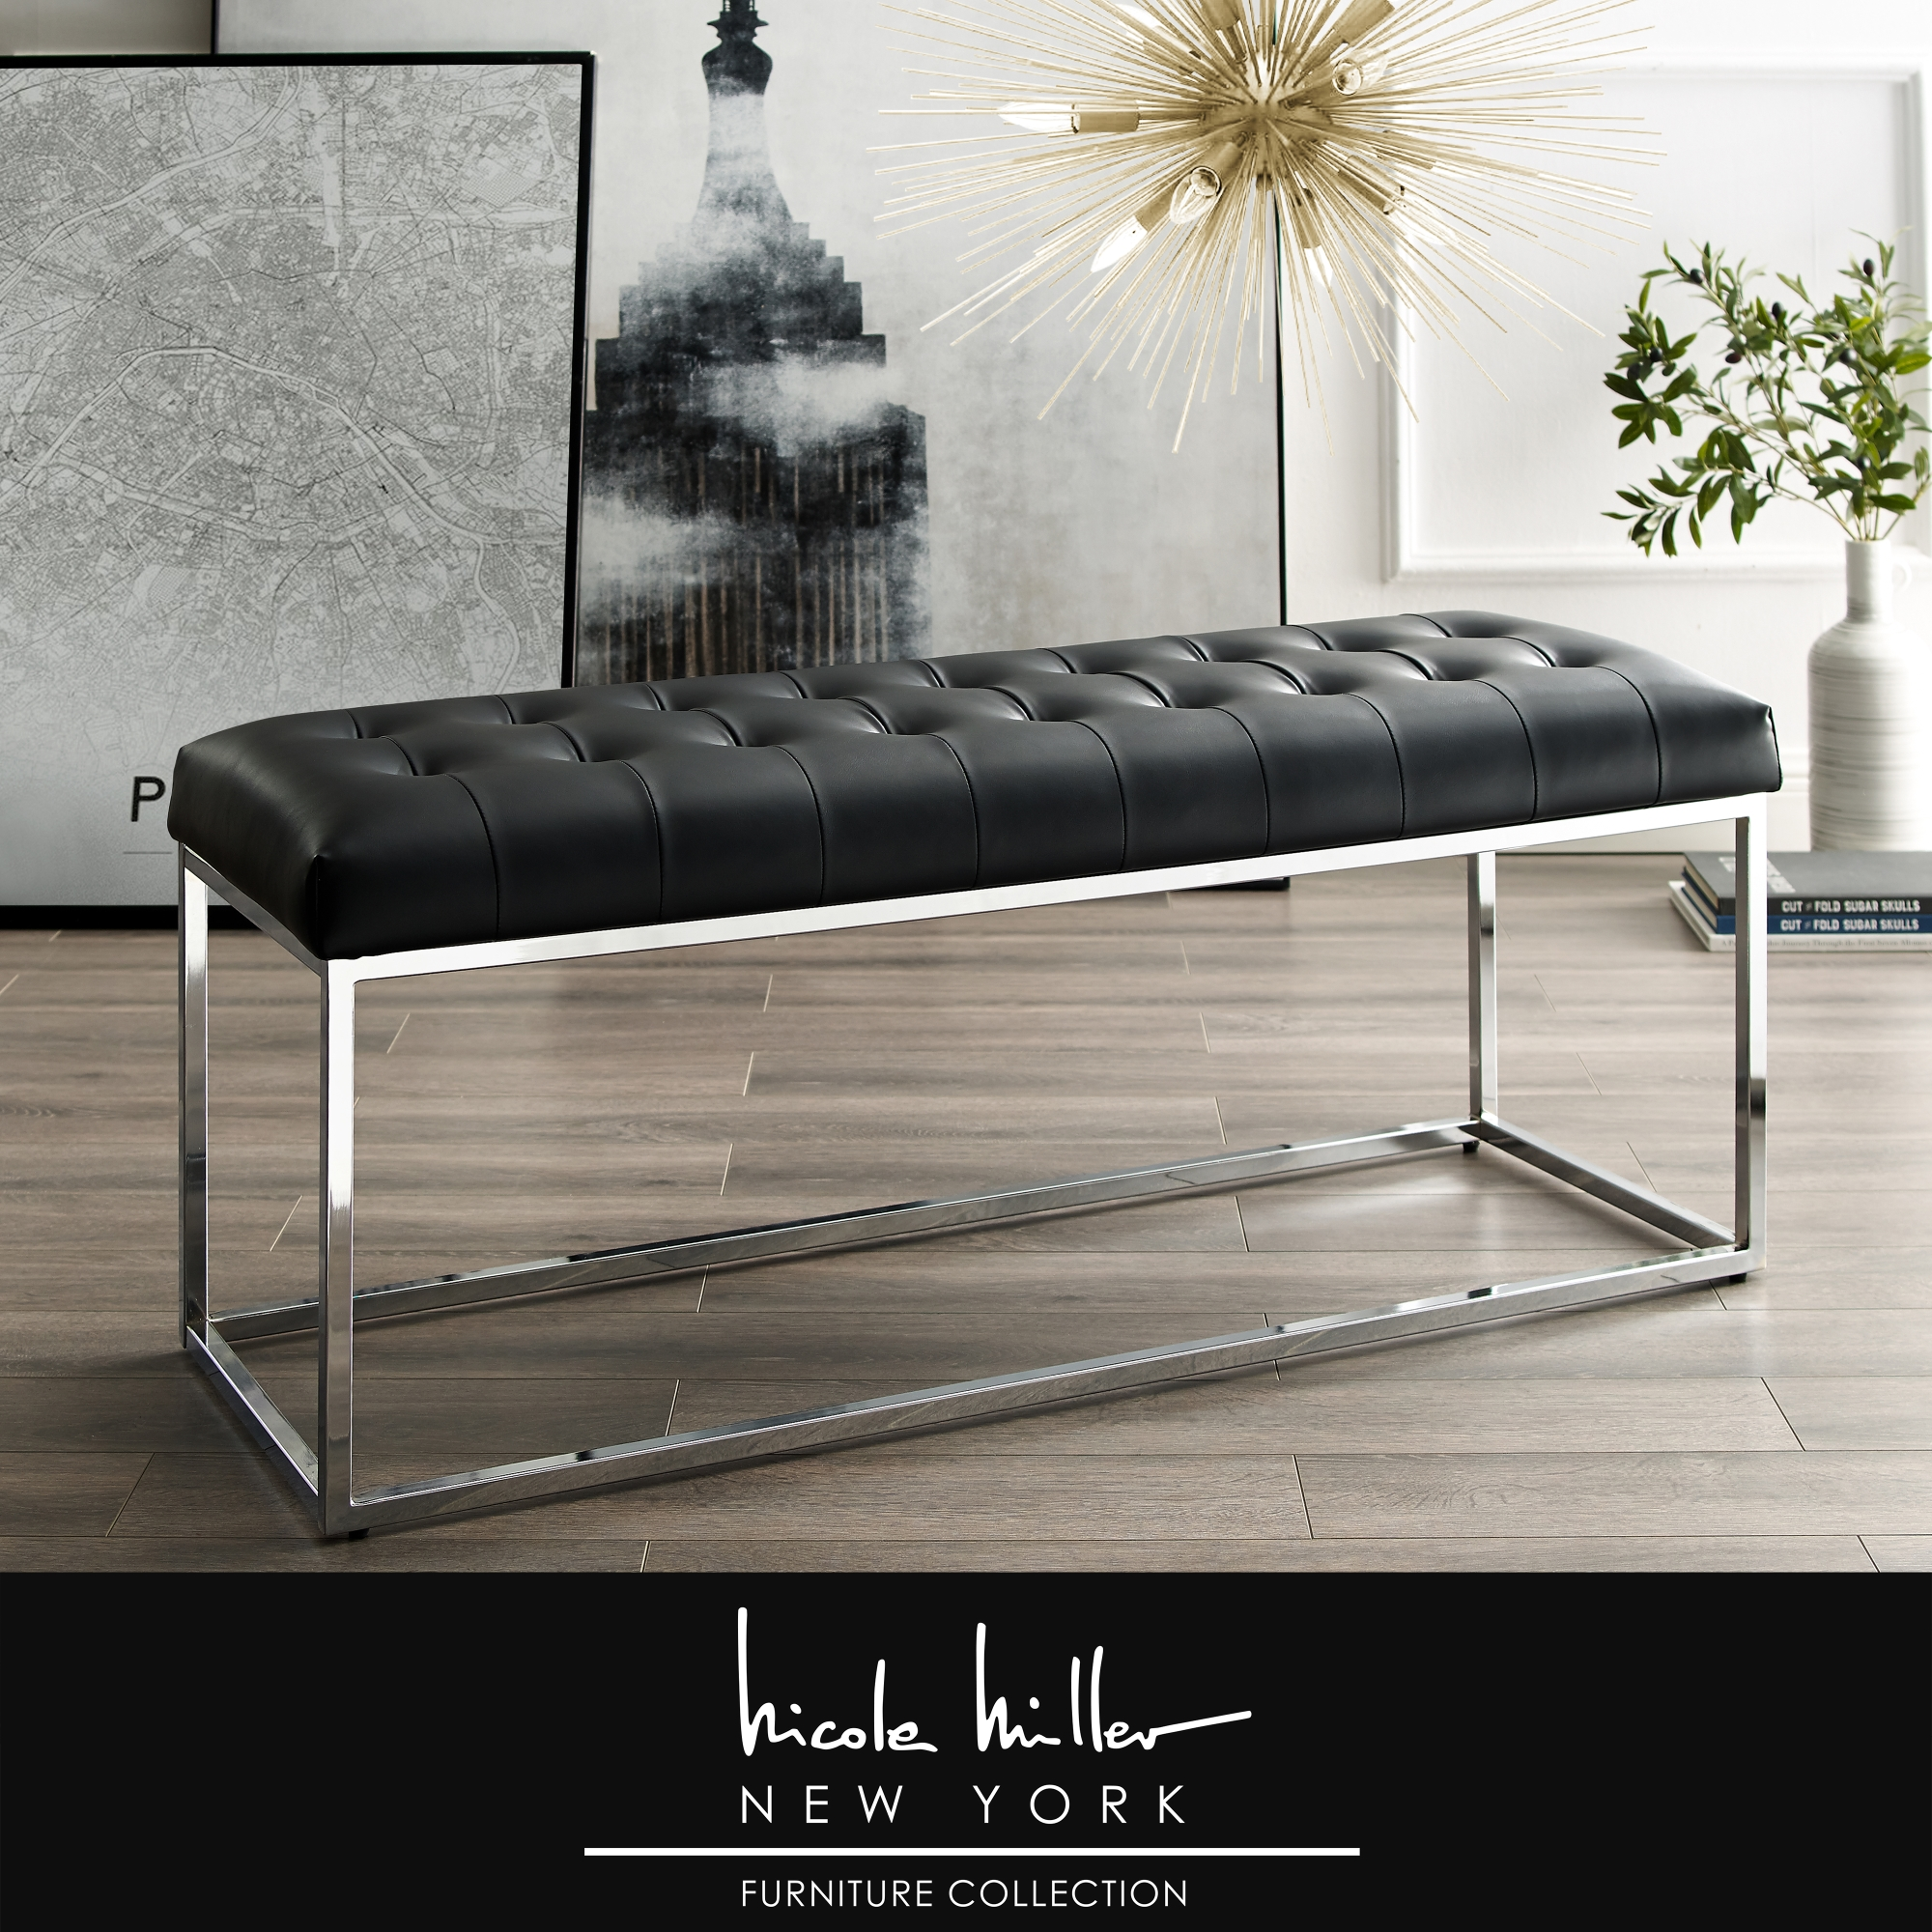 Nicole Miller Black/Chrome PU Leather Bench Upholstered Button Tufted